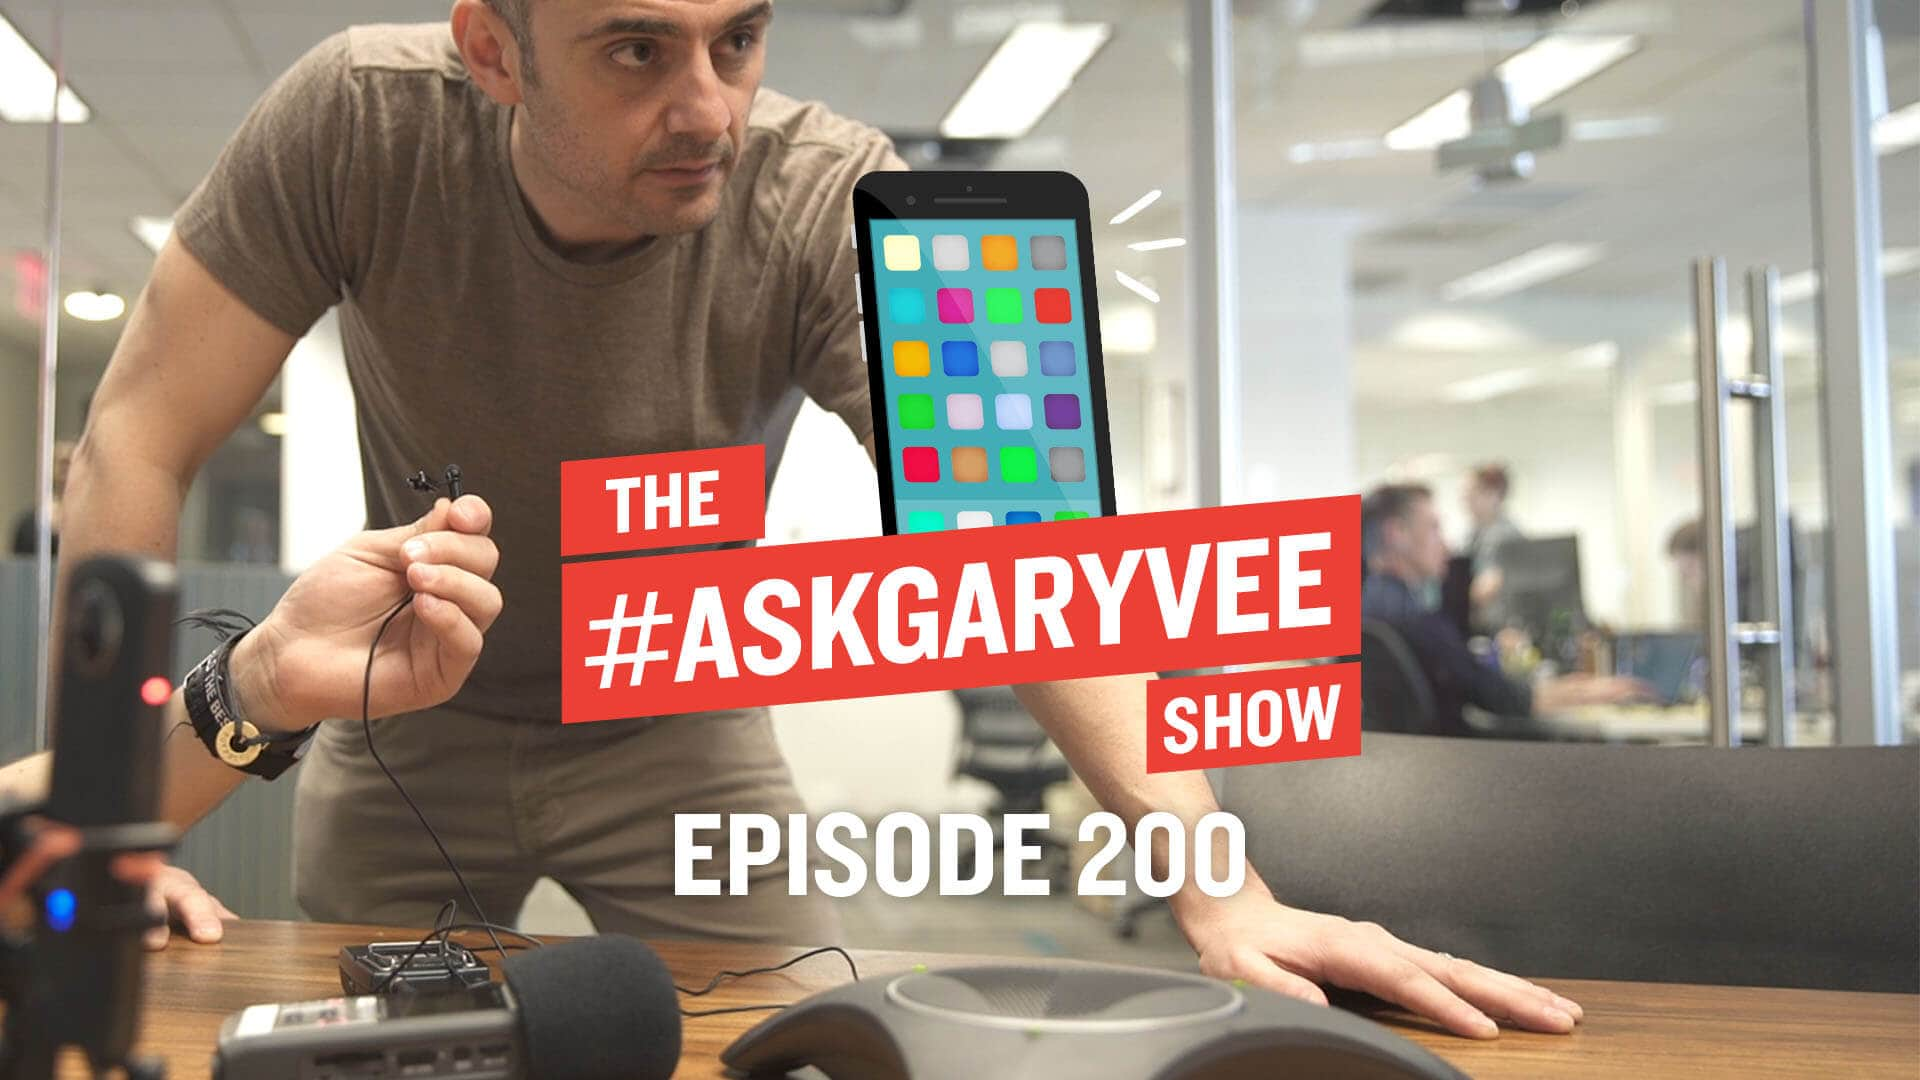 The #AskGaryVee Show Episode 200